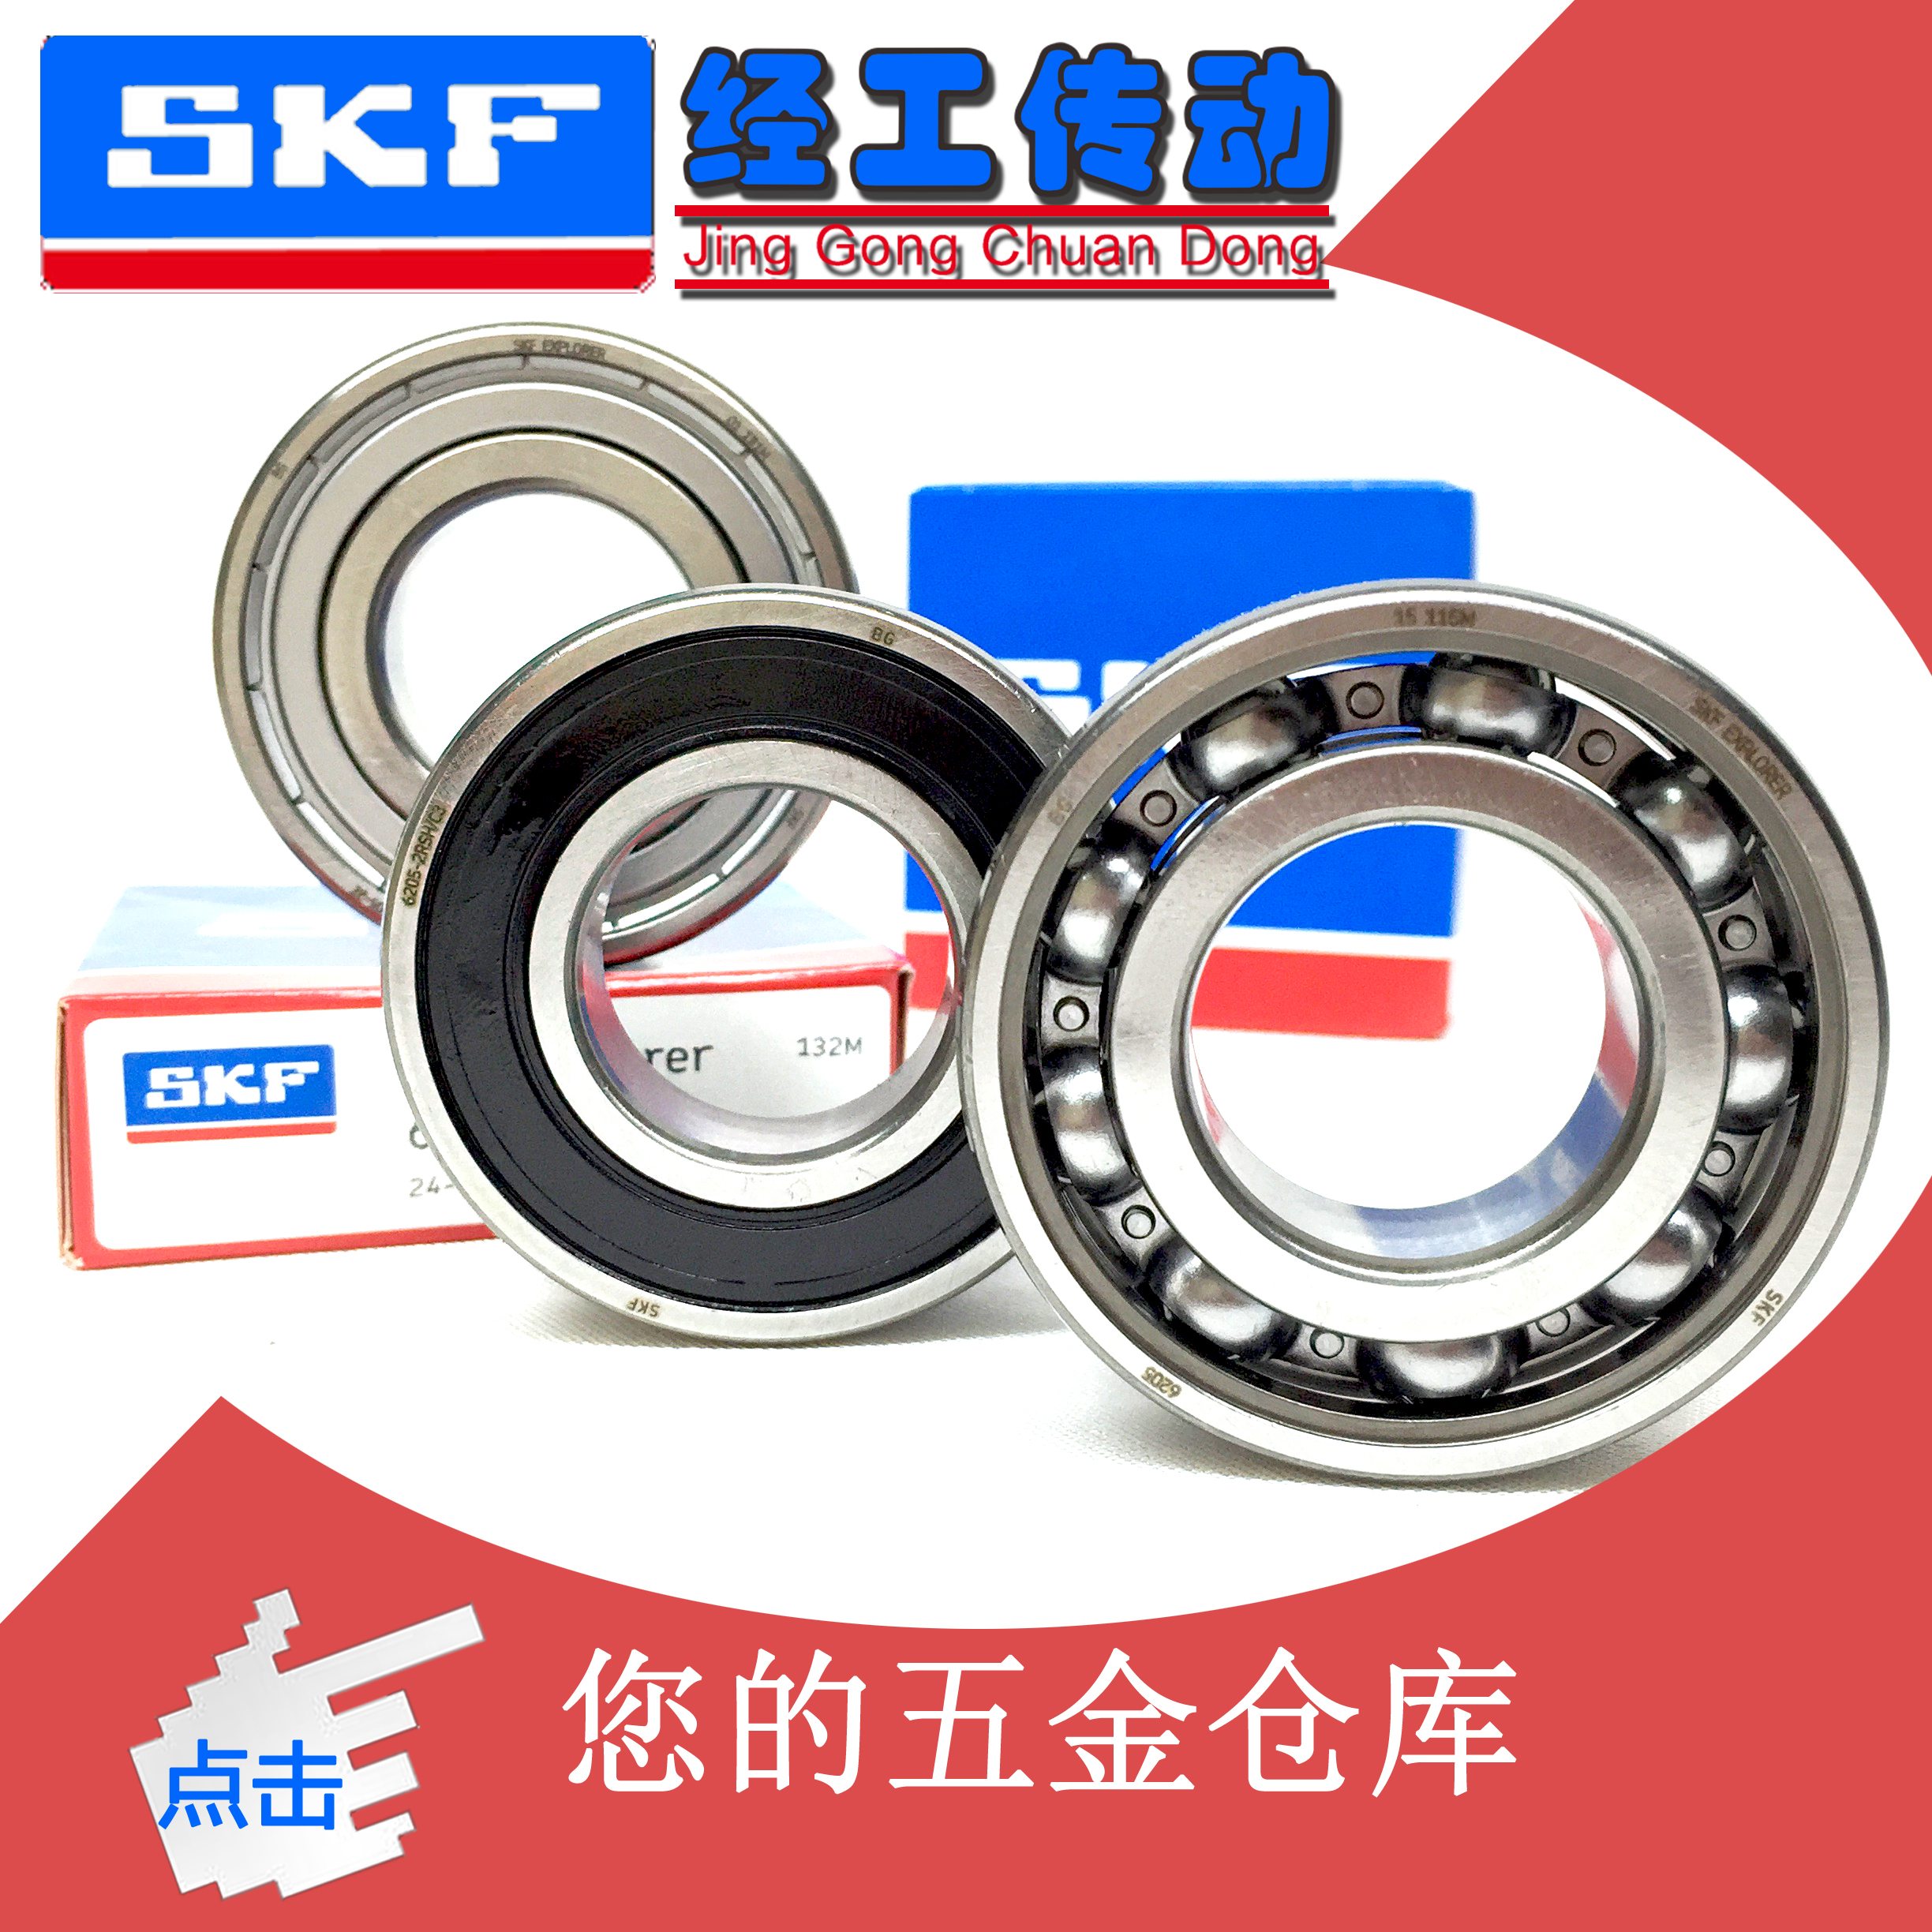 Imported skf skf bearings 62200 62201 62202 62203 62204 62205-2RS1/c3